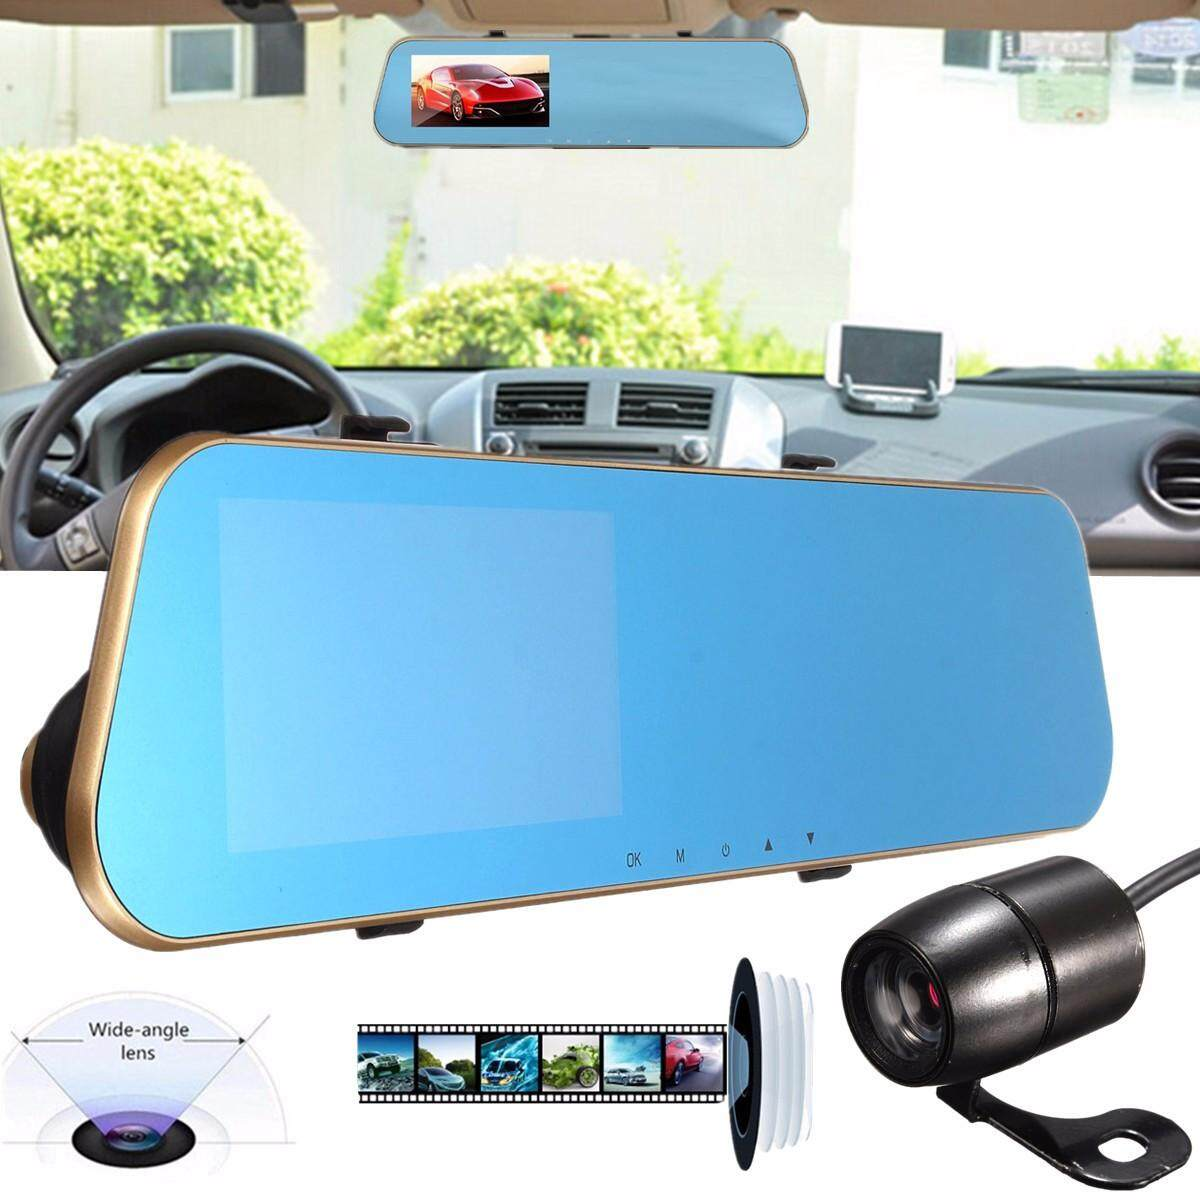 Back To Search Resultsautomobiles & Motorcycles Car Video Surveillance A5 7 Inch Dashcam Driving Mirror Dvr Android 8.1 Car Stereo Mp5 Player+car Rearview Camera+car Dvr